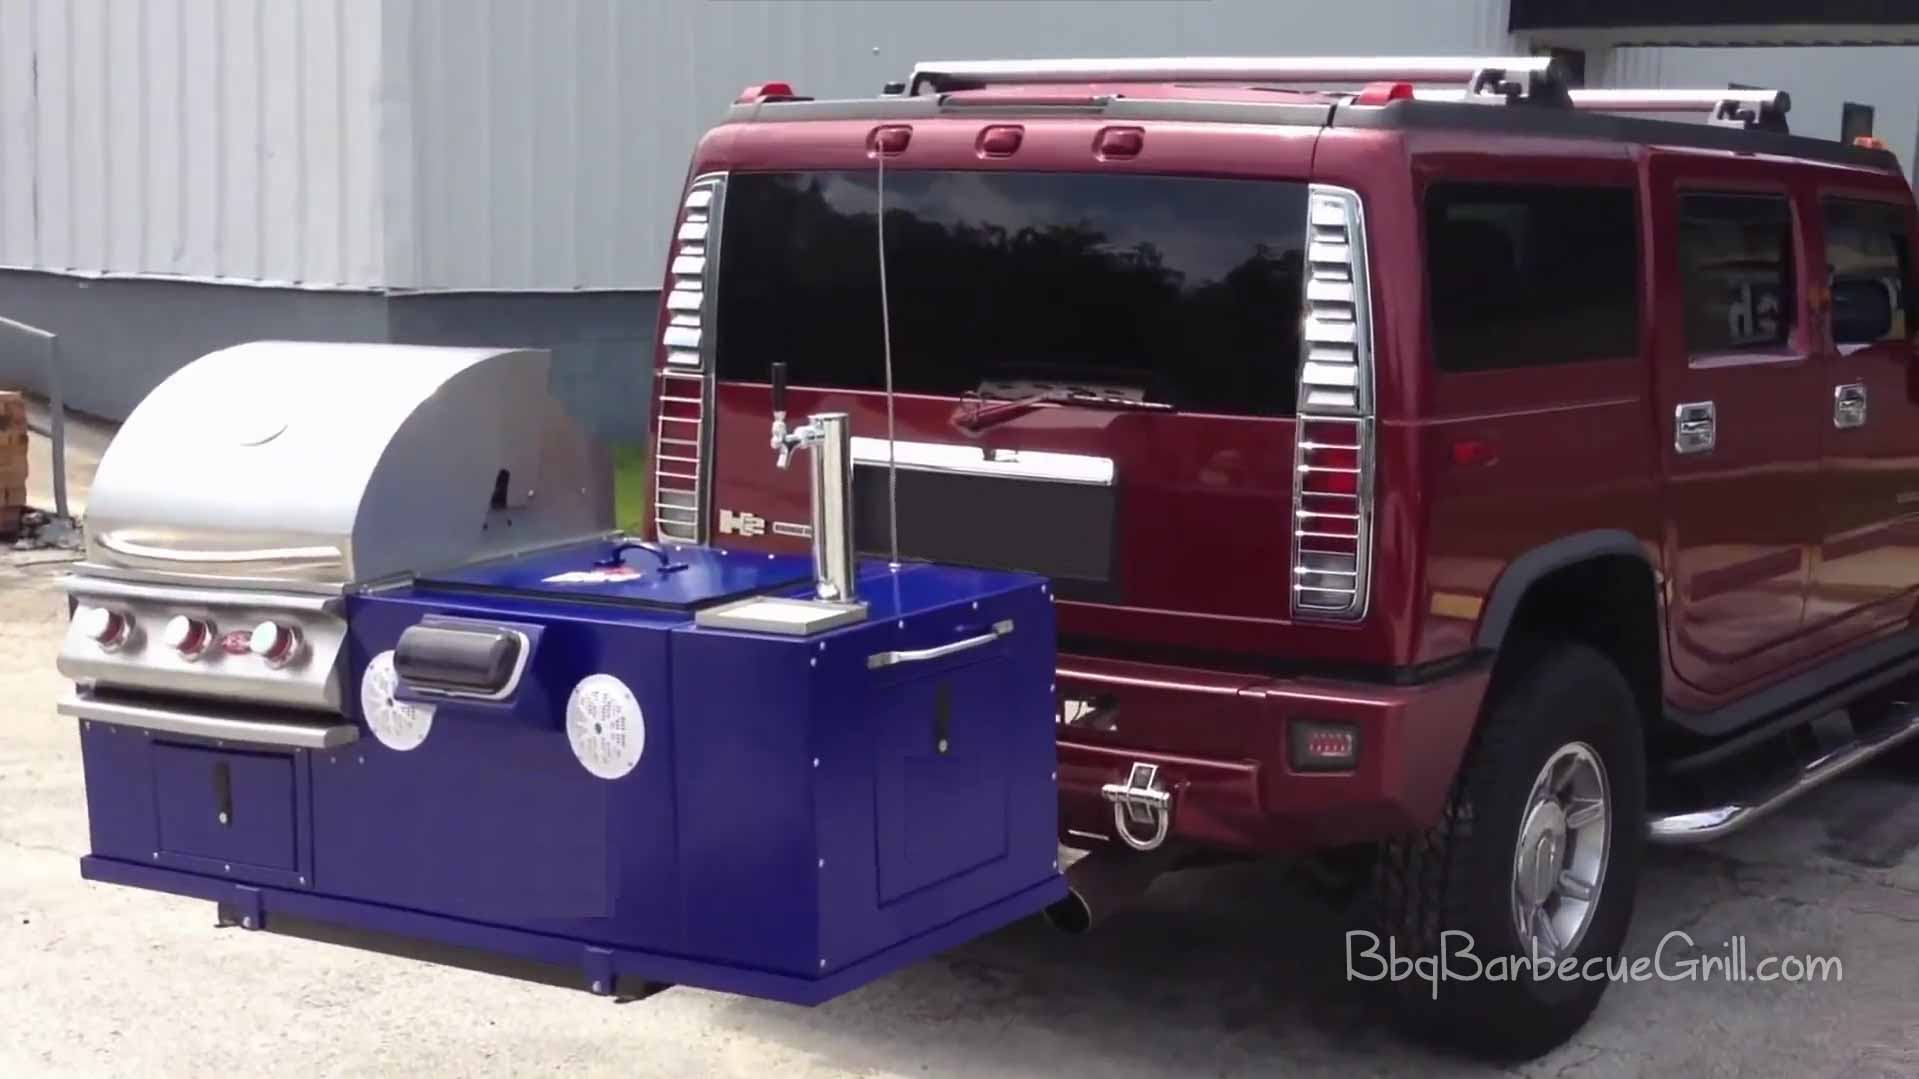 Find The Best Tailgate Grill 5 Serious Options In 2017